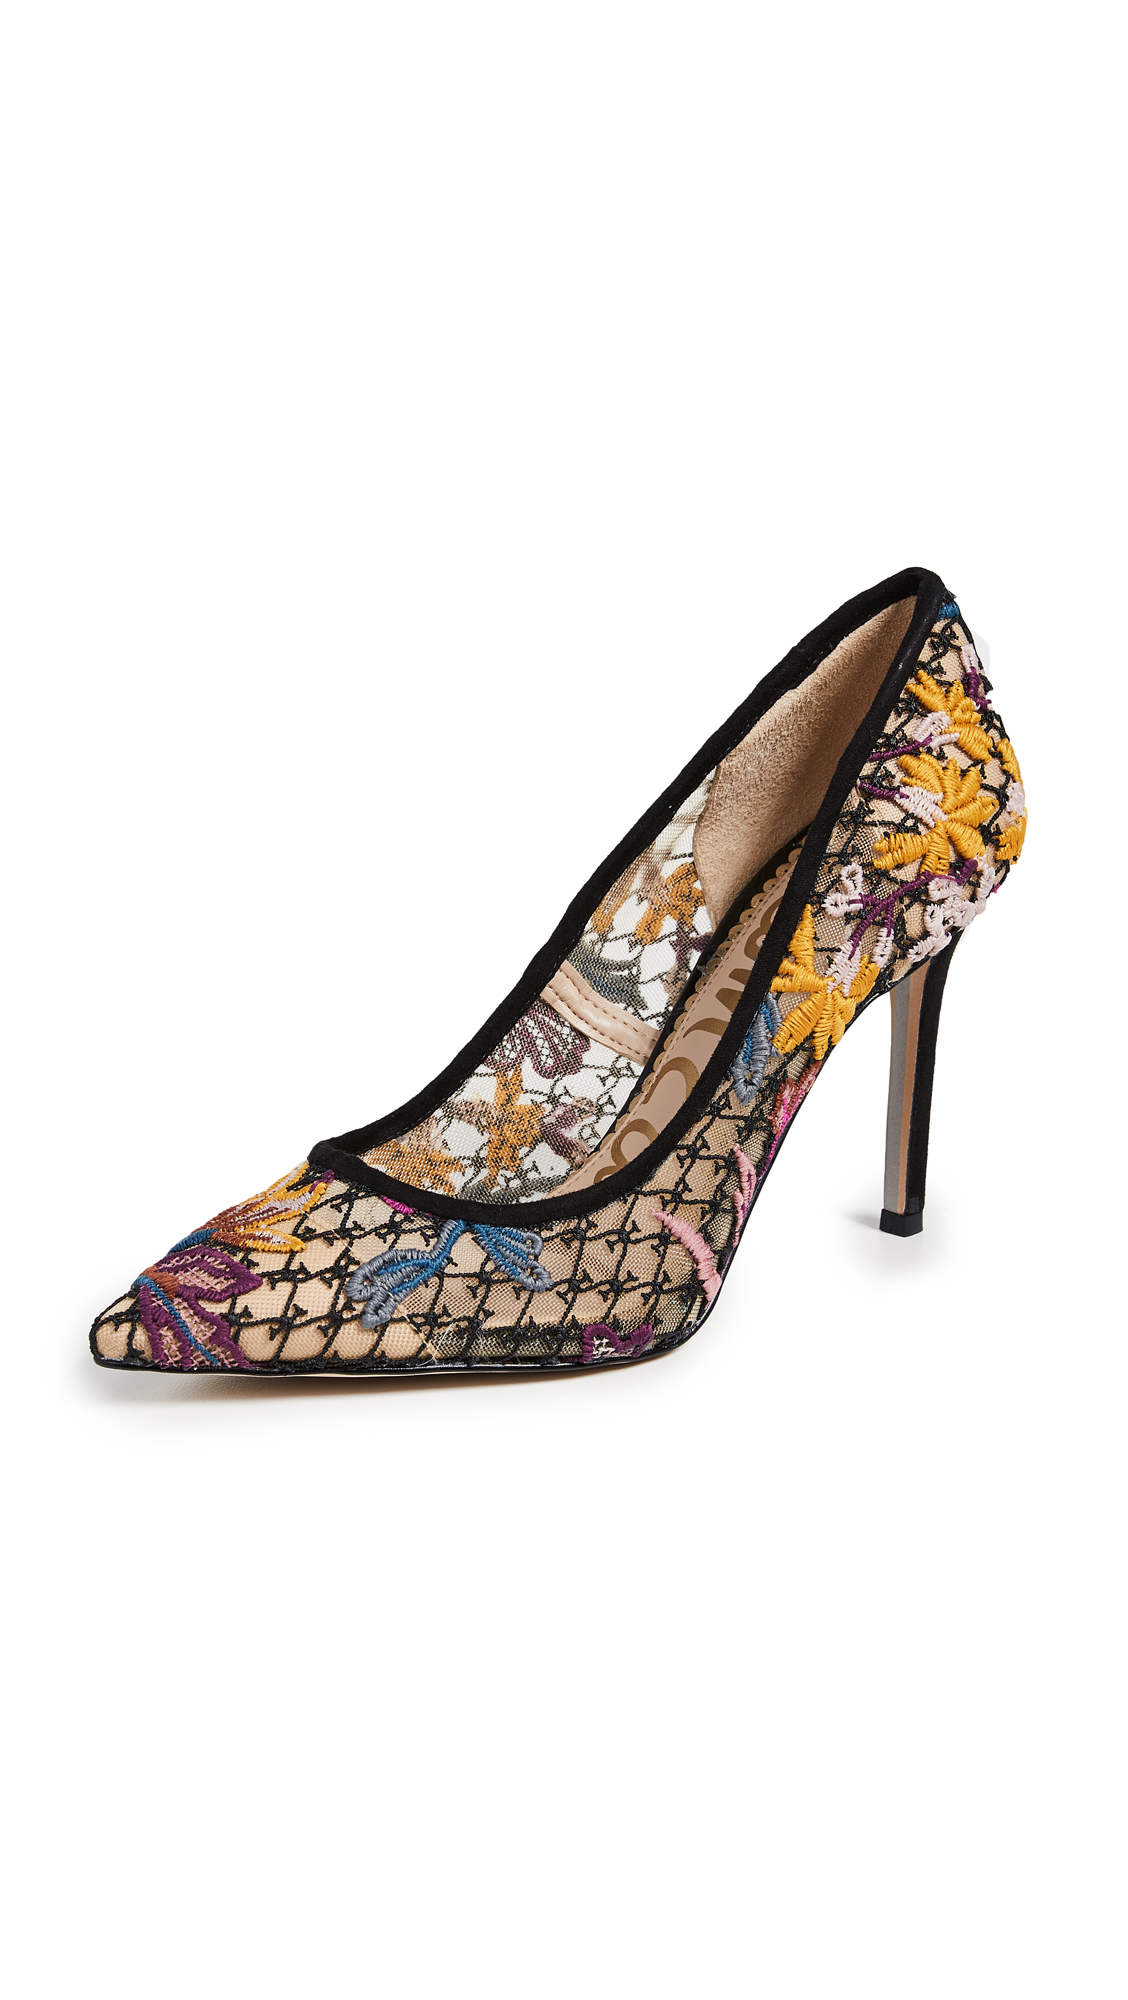 Sam Edelman Hazel Pumps - Bright Multi